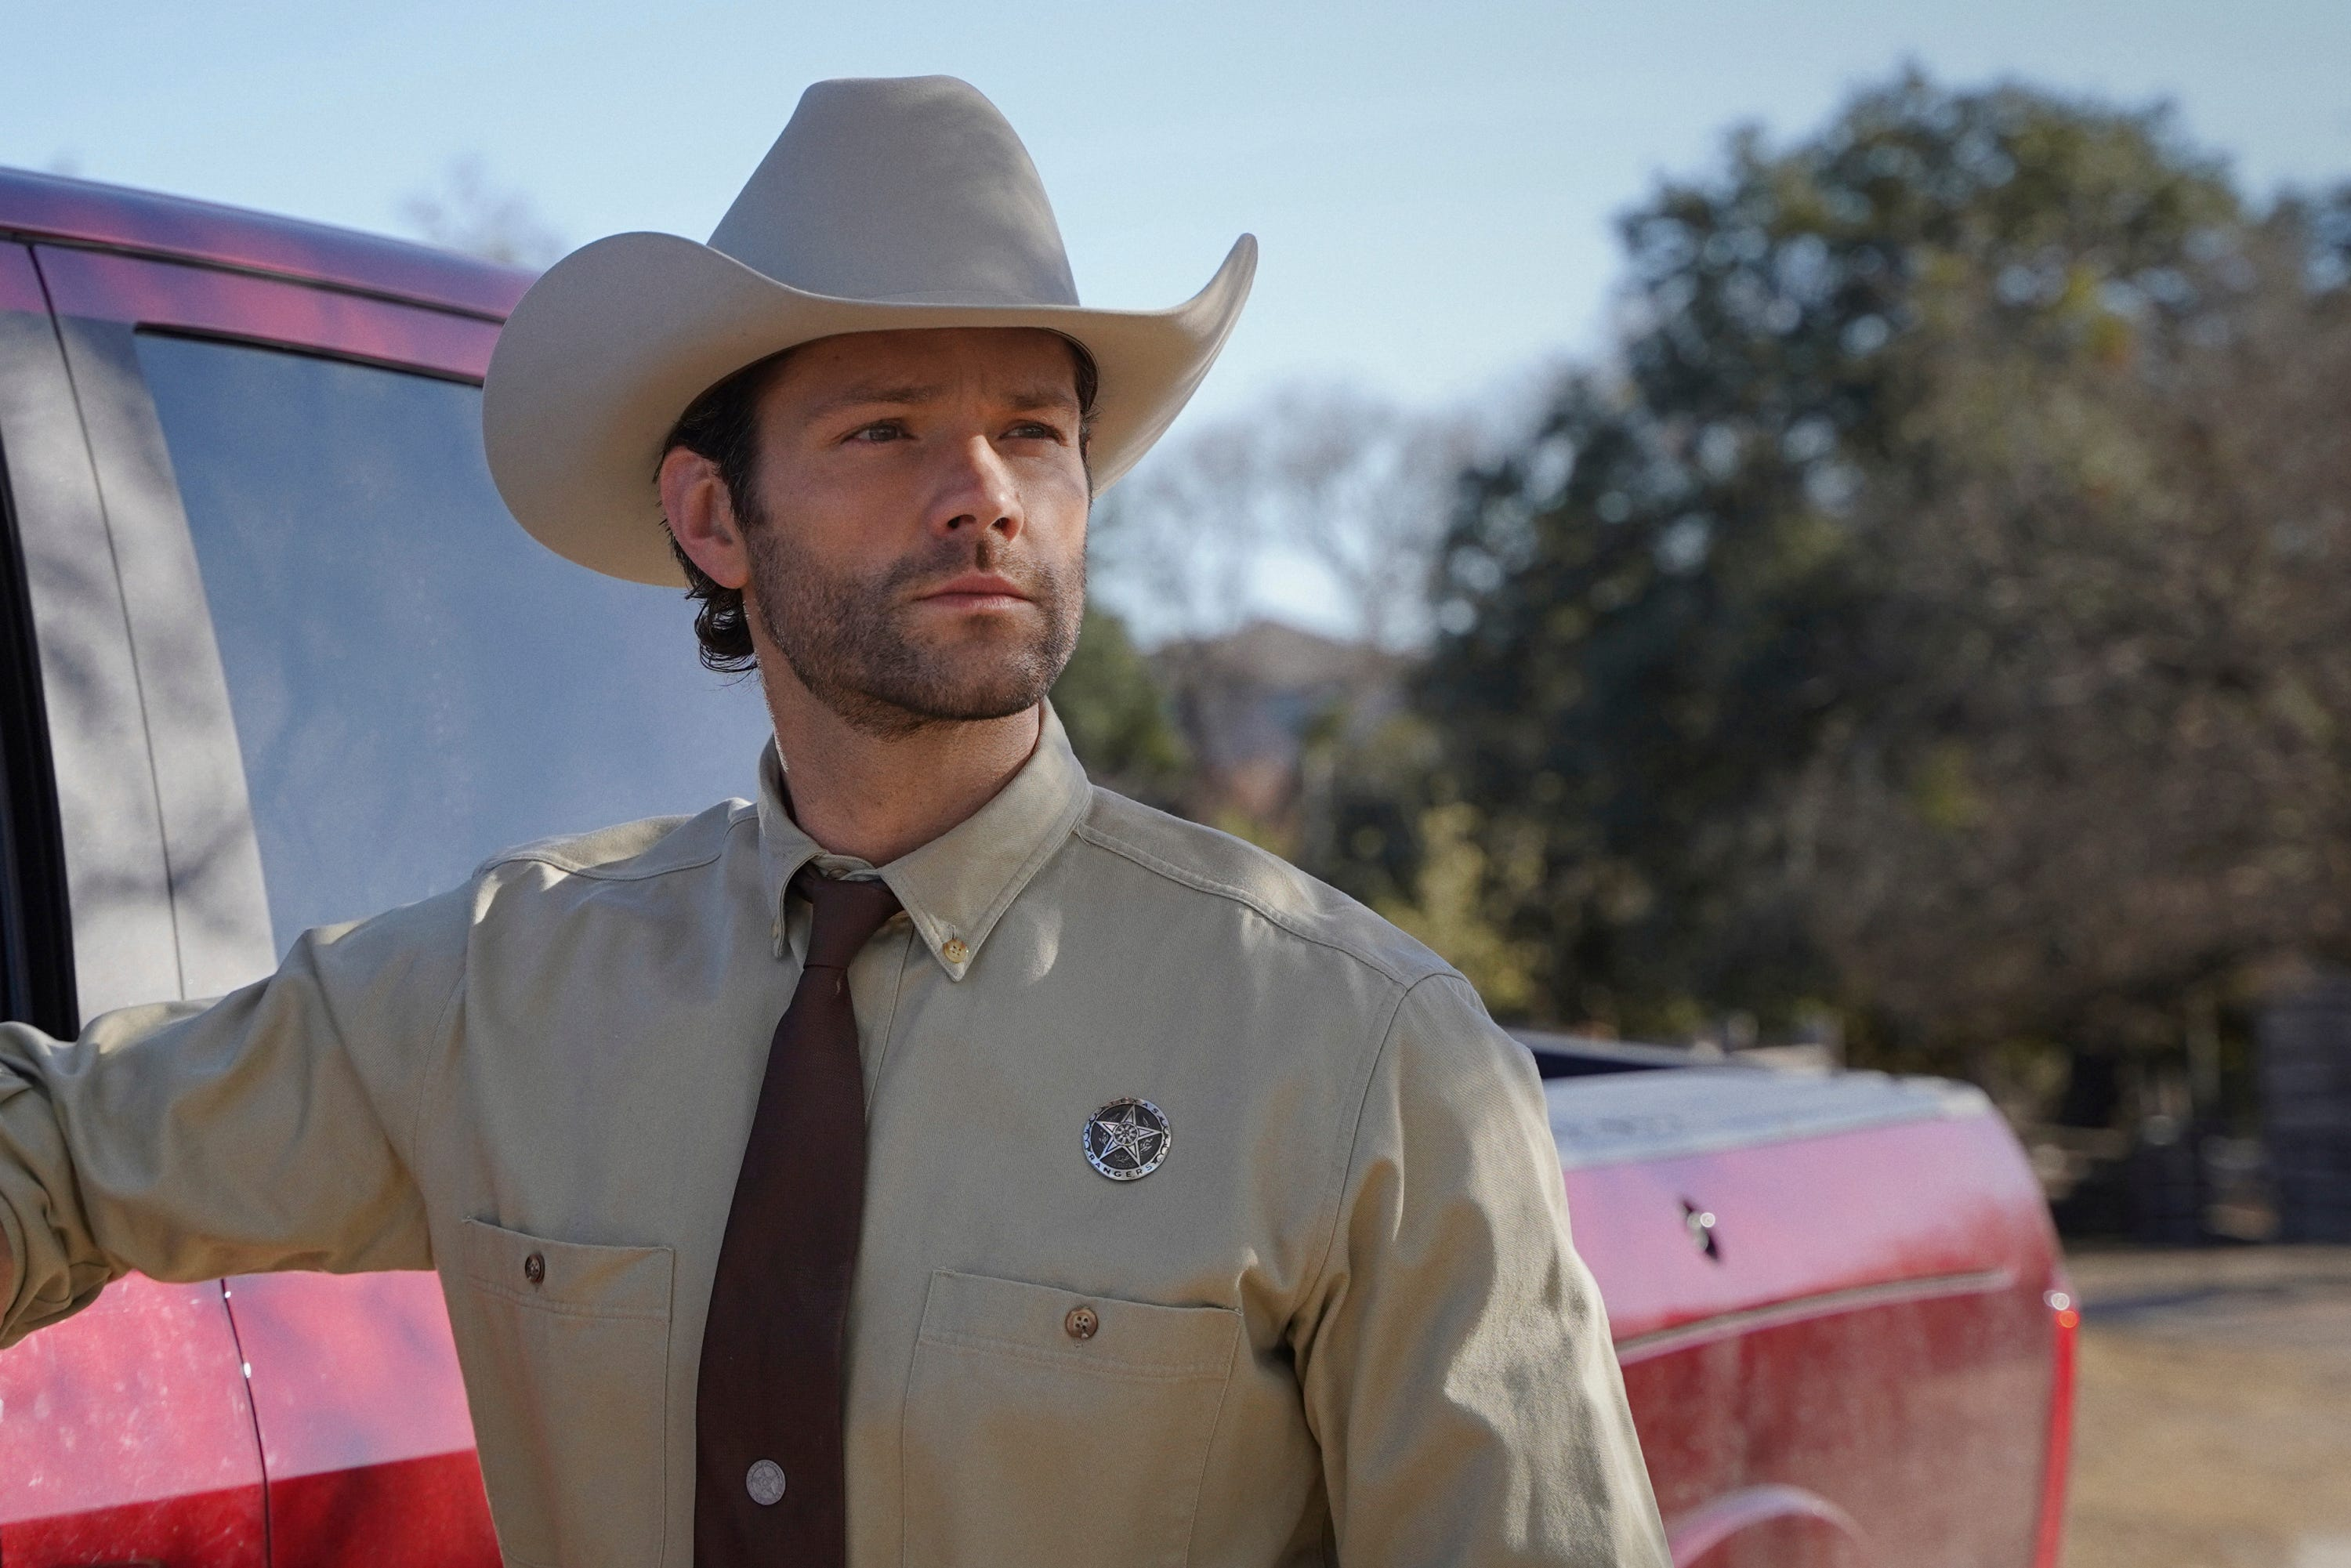 Walker' reboot review: Jared Padalecki, Texas Ranger, in fantasy Austin